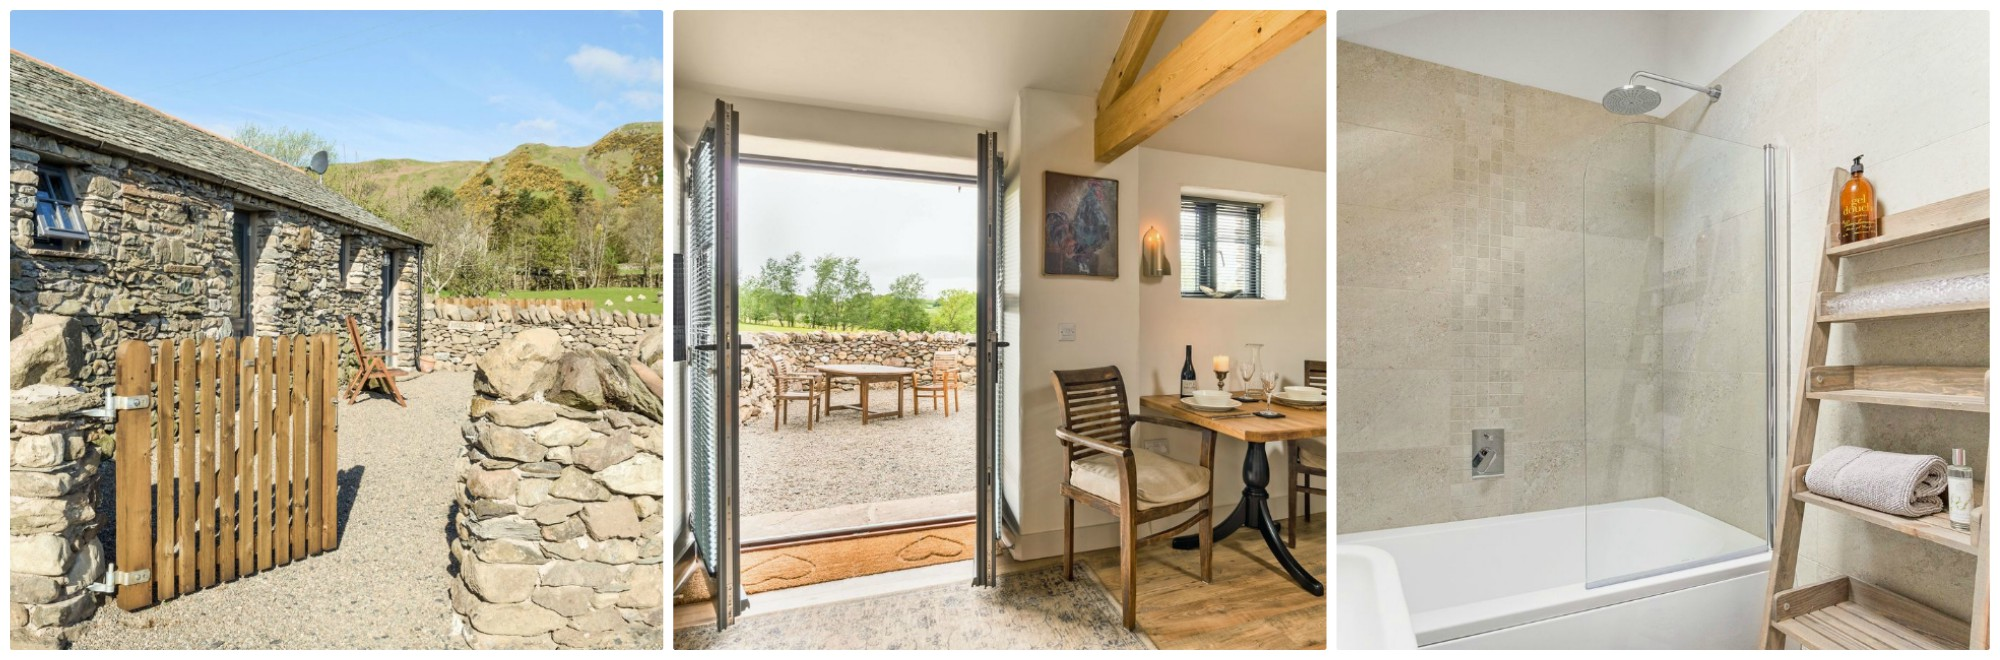 Sleeps 2 and 2 pets allowed - traditional barn conversion with a contemporary feel